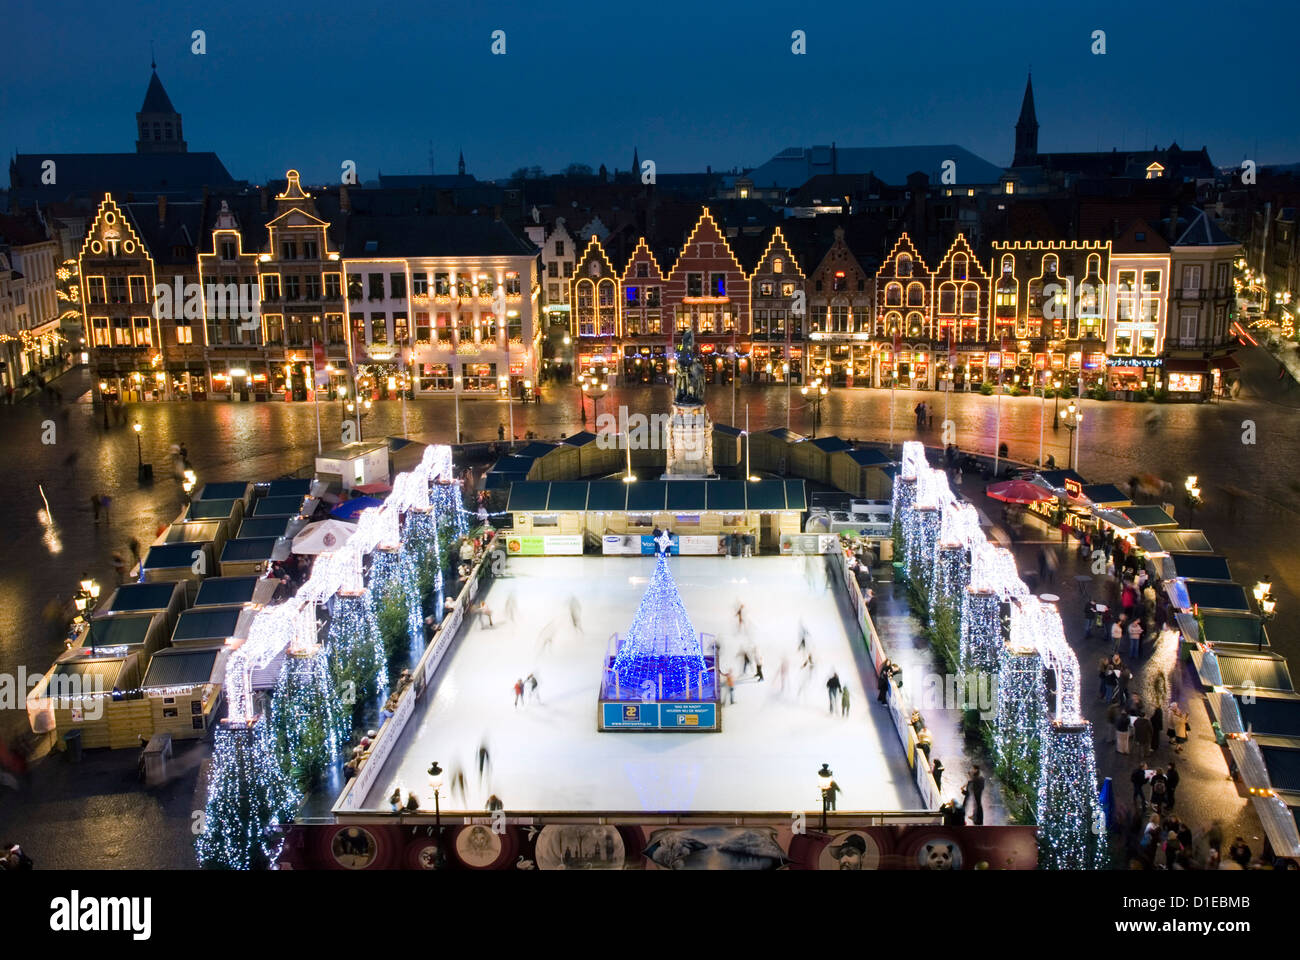 Bruges Christmas Market Images.Ice Rink And Christmas Market In The Market Square Bruges